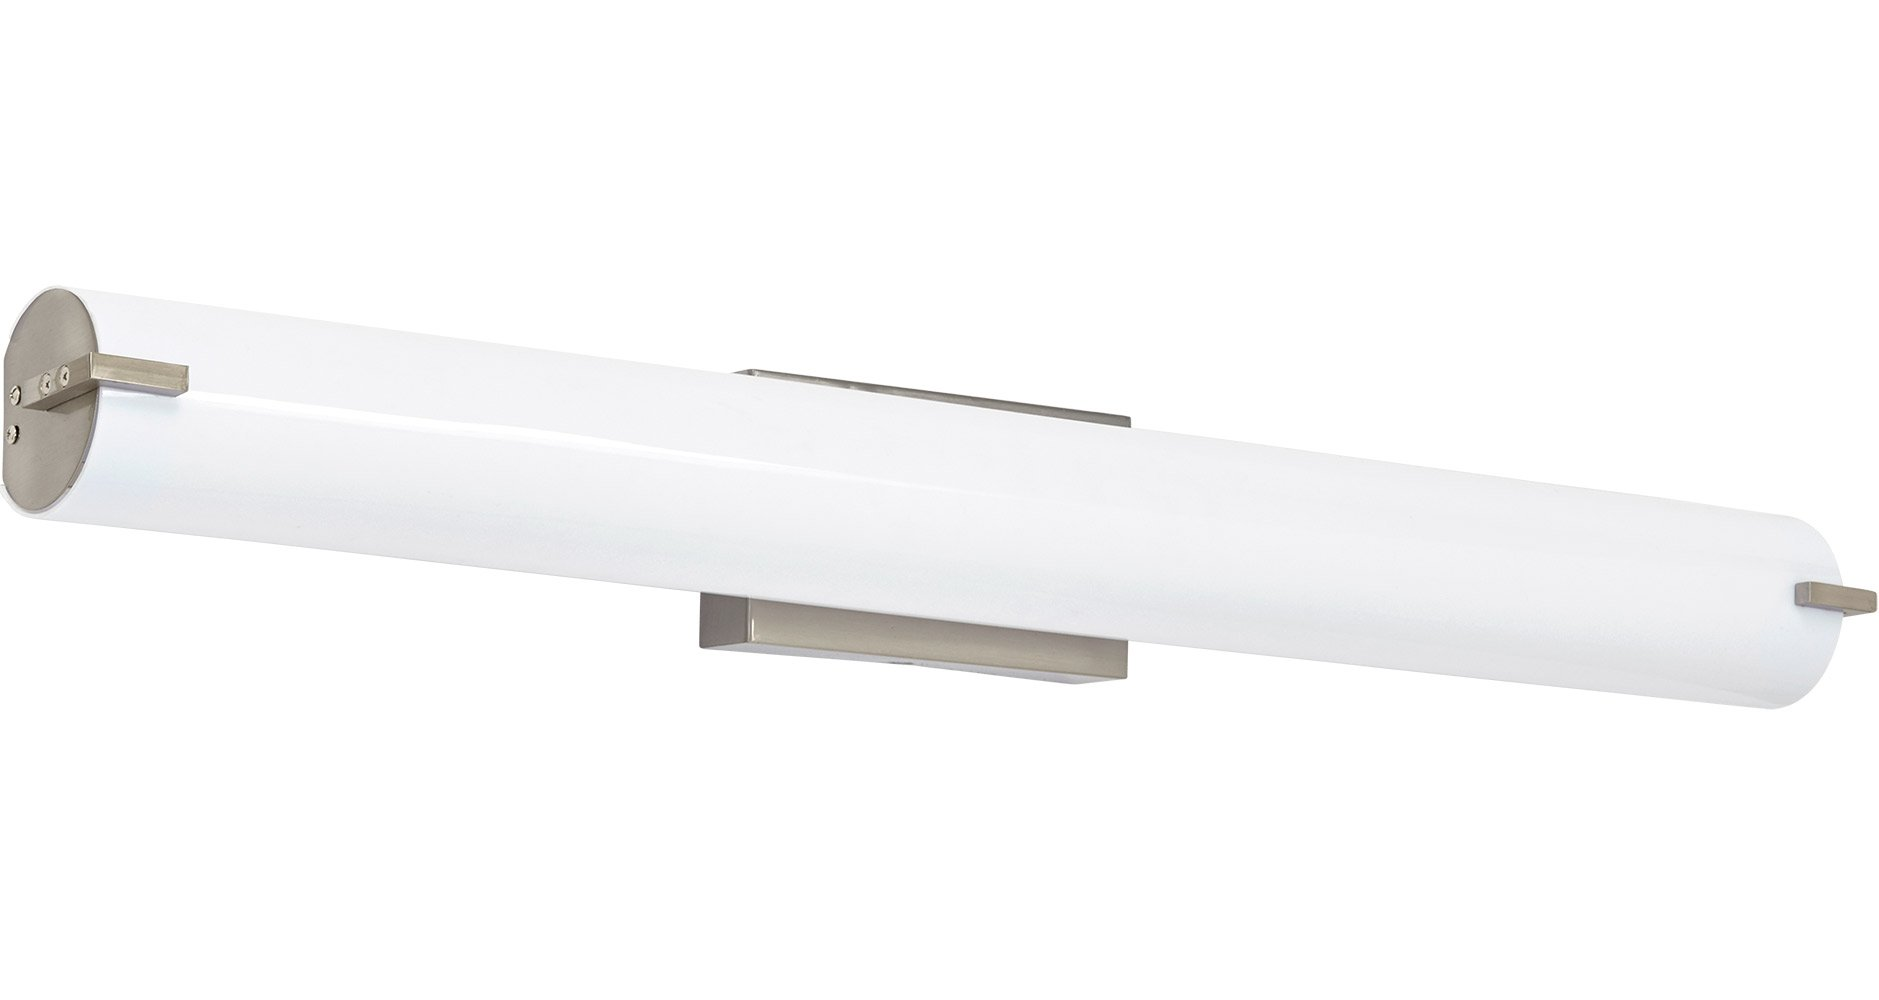 NEW Modern Frosted Bathroom Vanity Light Fixture | Contemporary Sleek Dimmable LED Cylinder Bar Design | Vertical or Horizontal Tube with Brushed Nickel Wall Sconce | 3000K Warm White